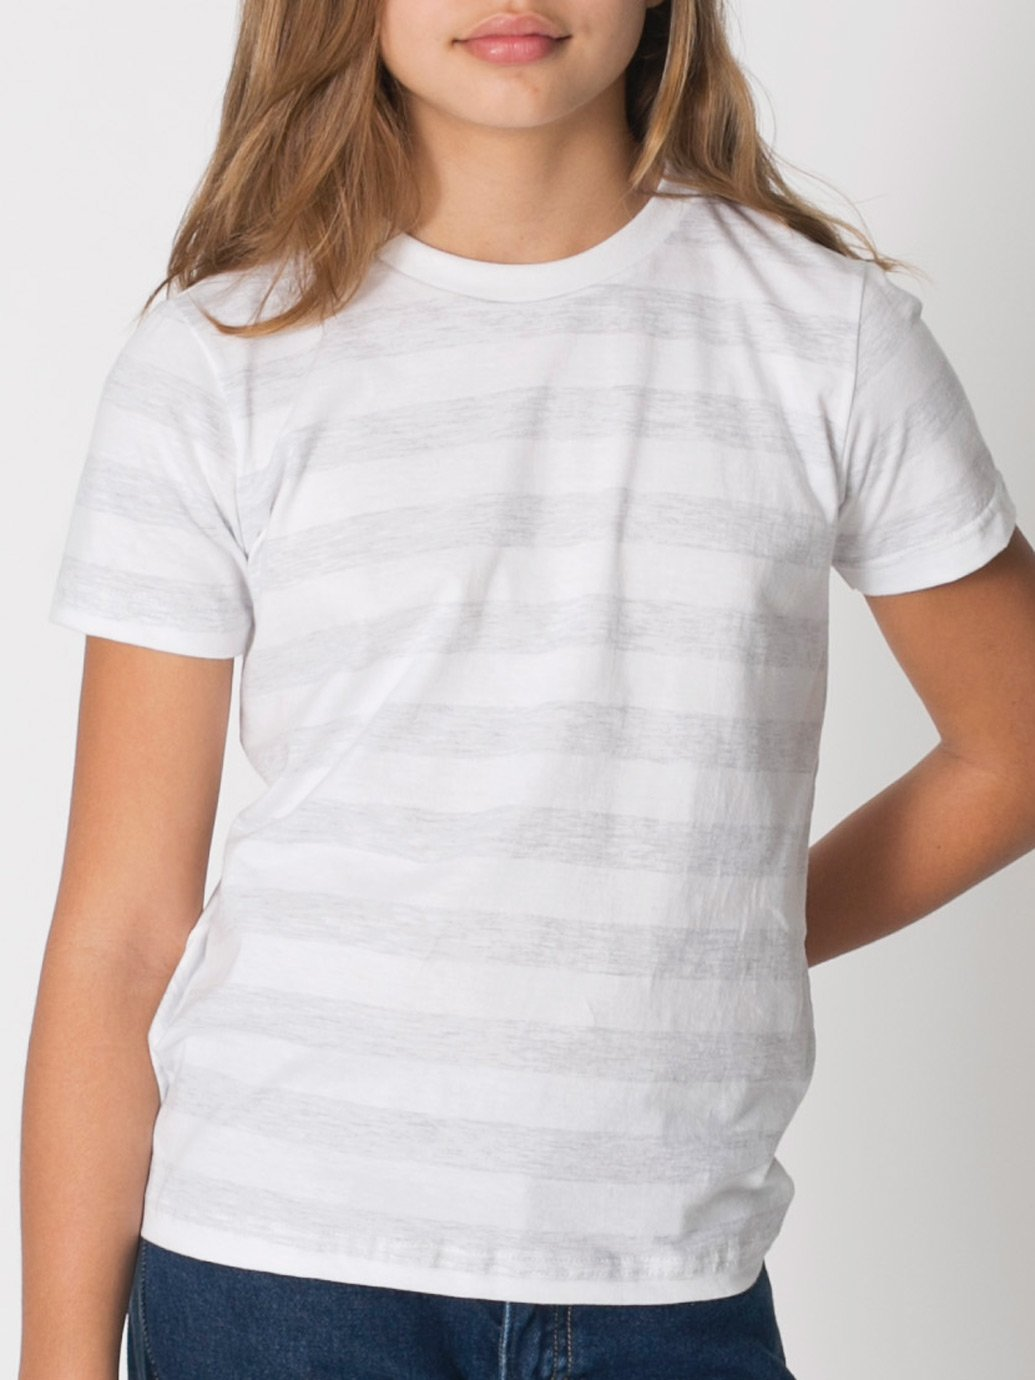 American Apparel Boys Fine Jersey Short-Sleeve T-Shirt (2201) -BABY BLUE -10 by American Apparel (Image #3)